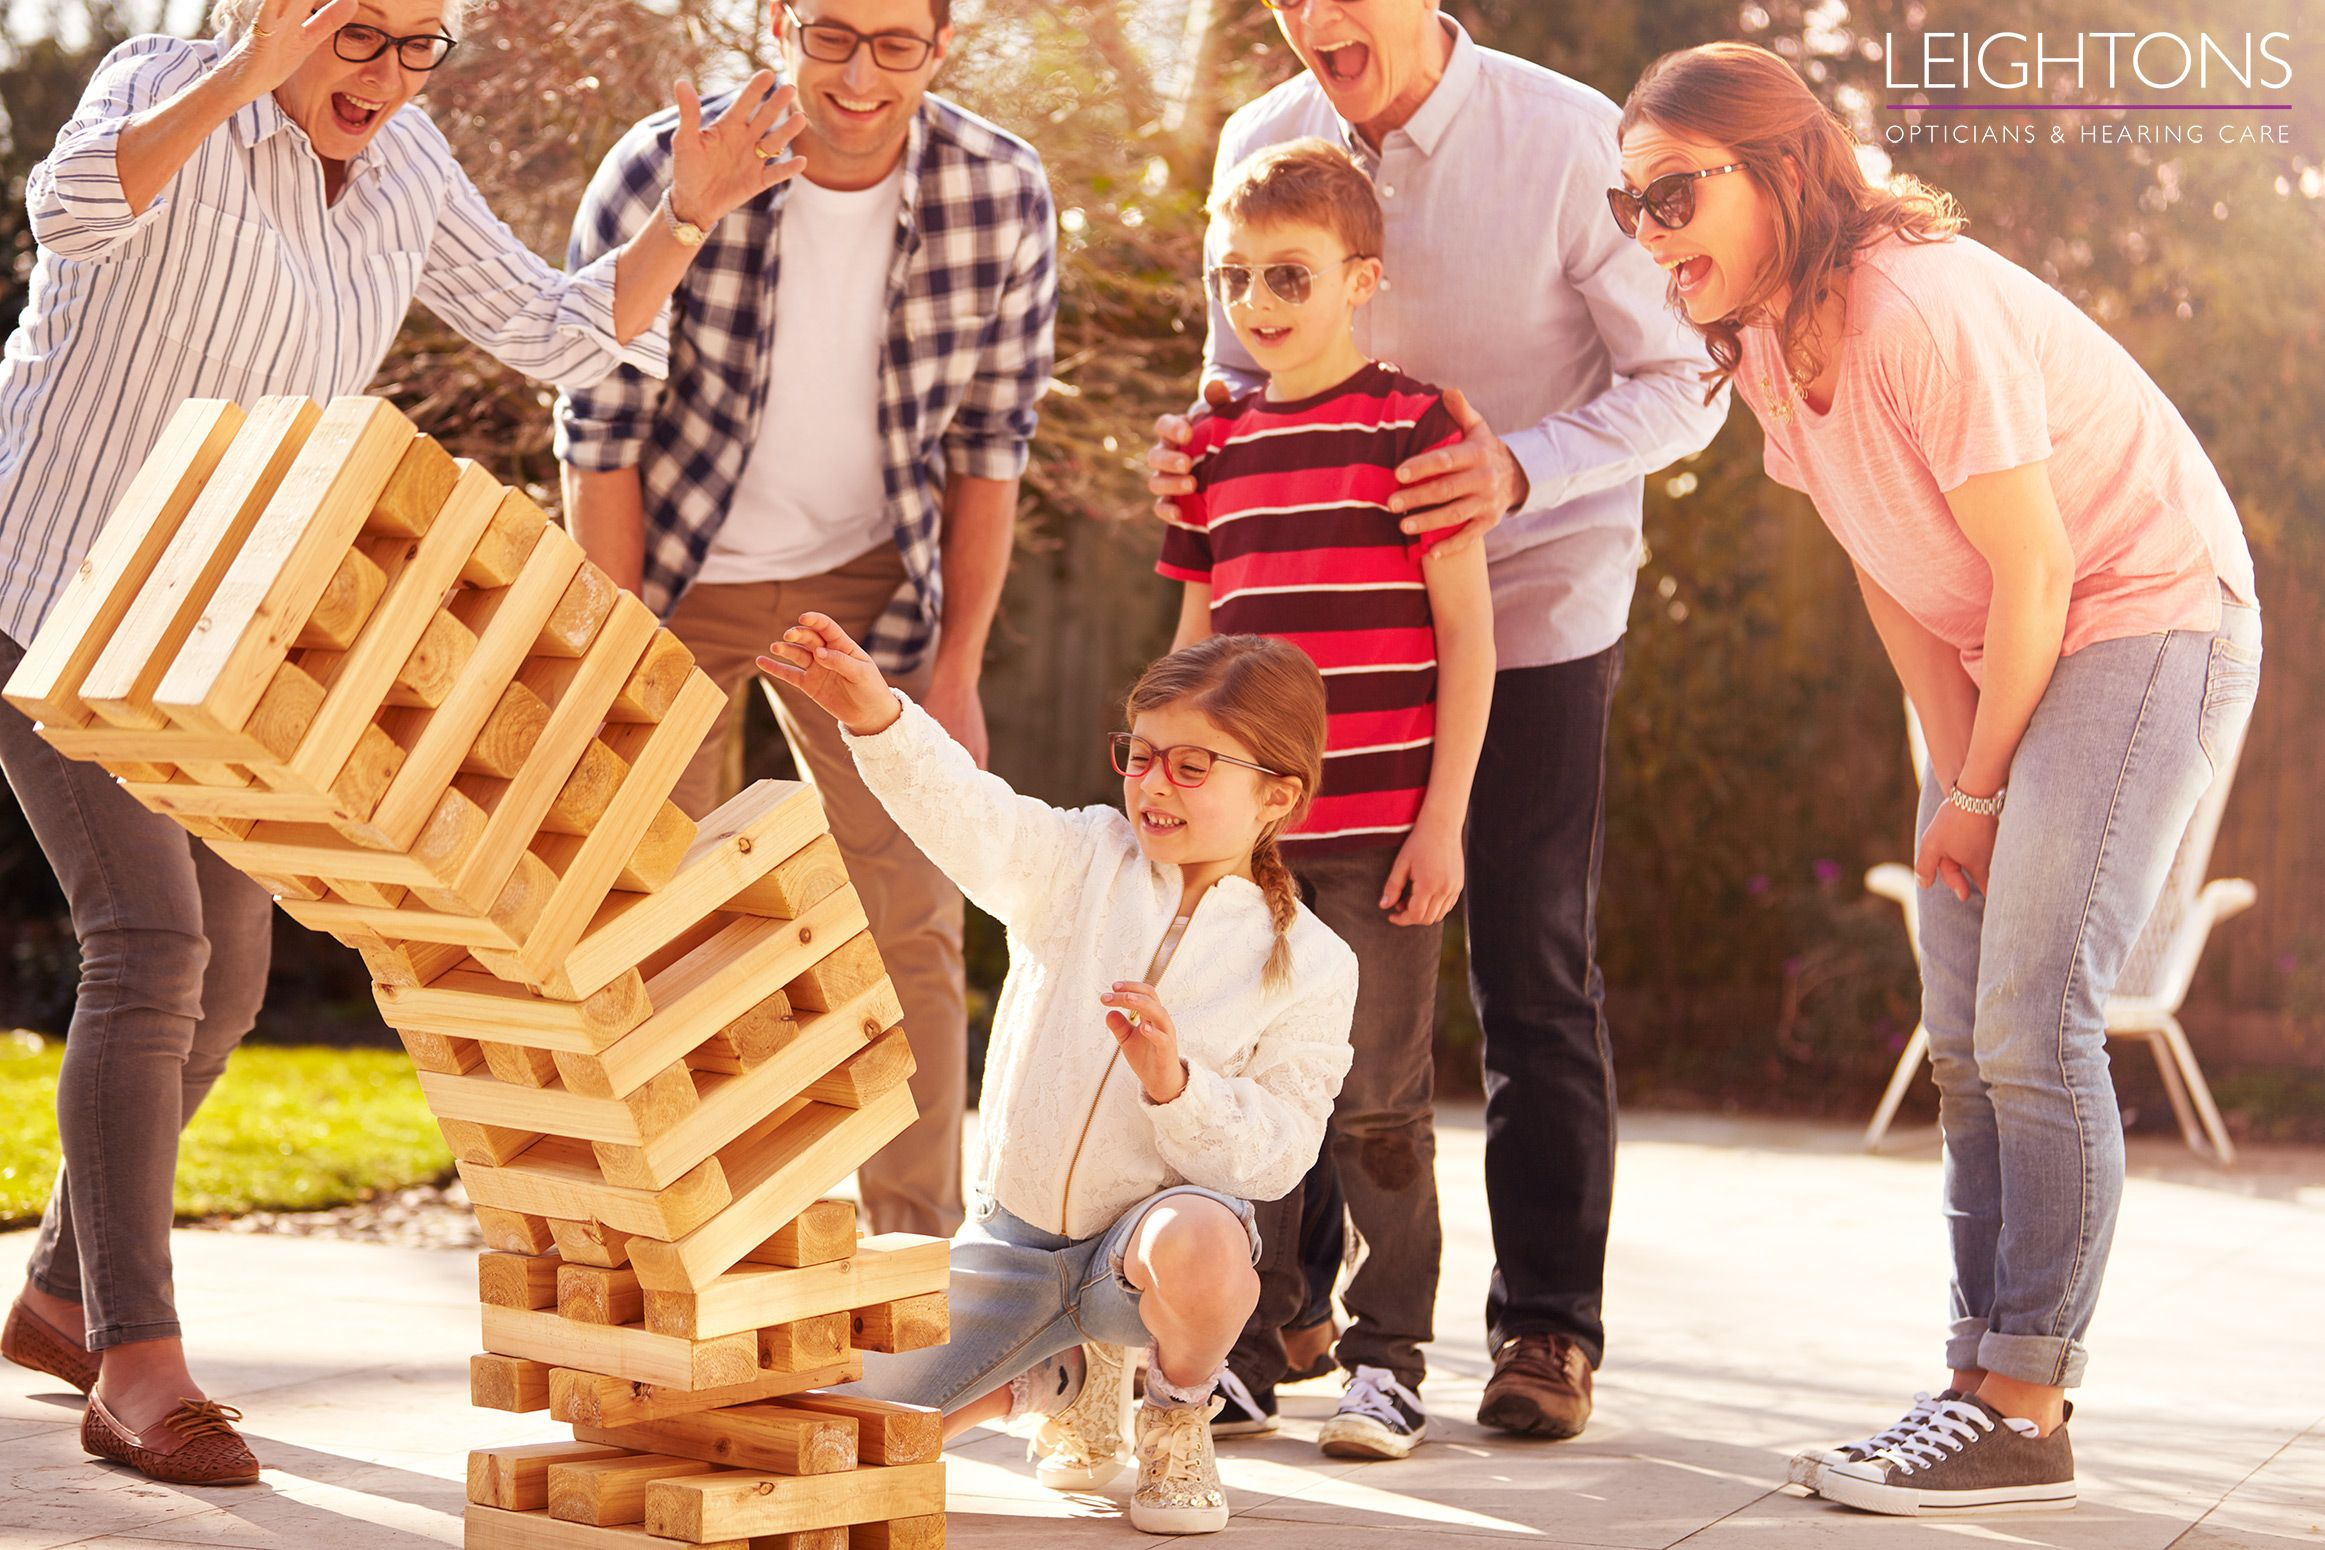 family-advertising-photographer-london-lifestyle-family-opticians-ruth-rose-7-compressor.jpg